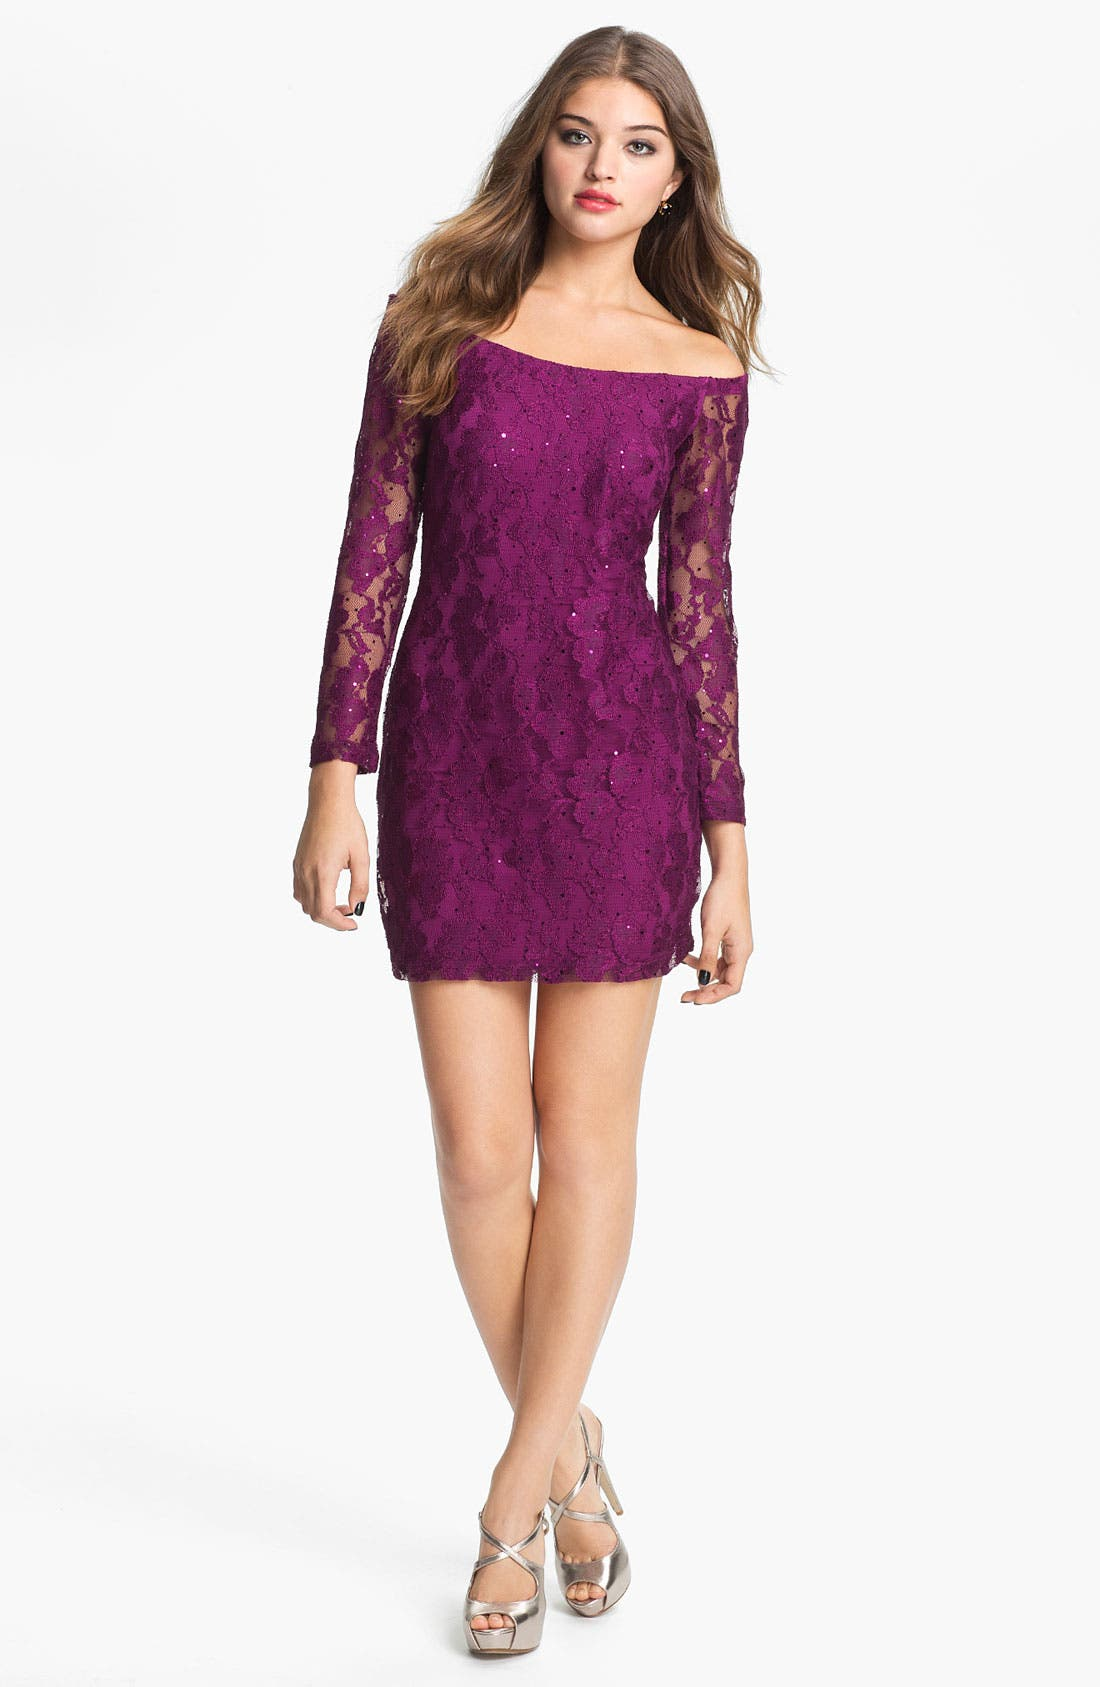 Alternate Image 1 Selected - Jessica McClintock Sheer Sleeve Sequin Lace Minidress